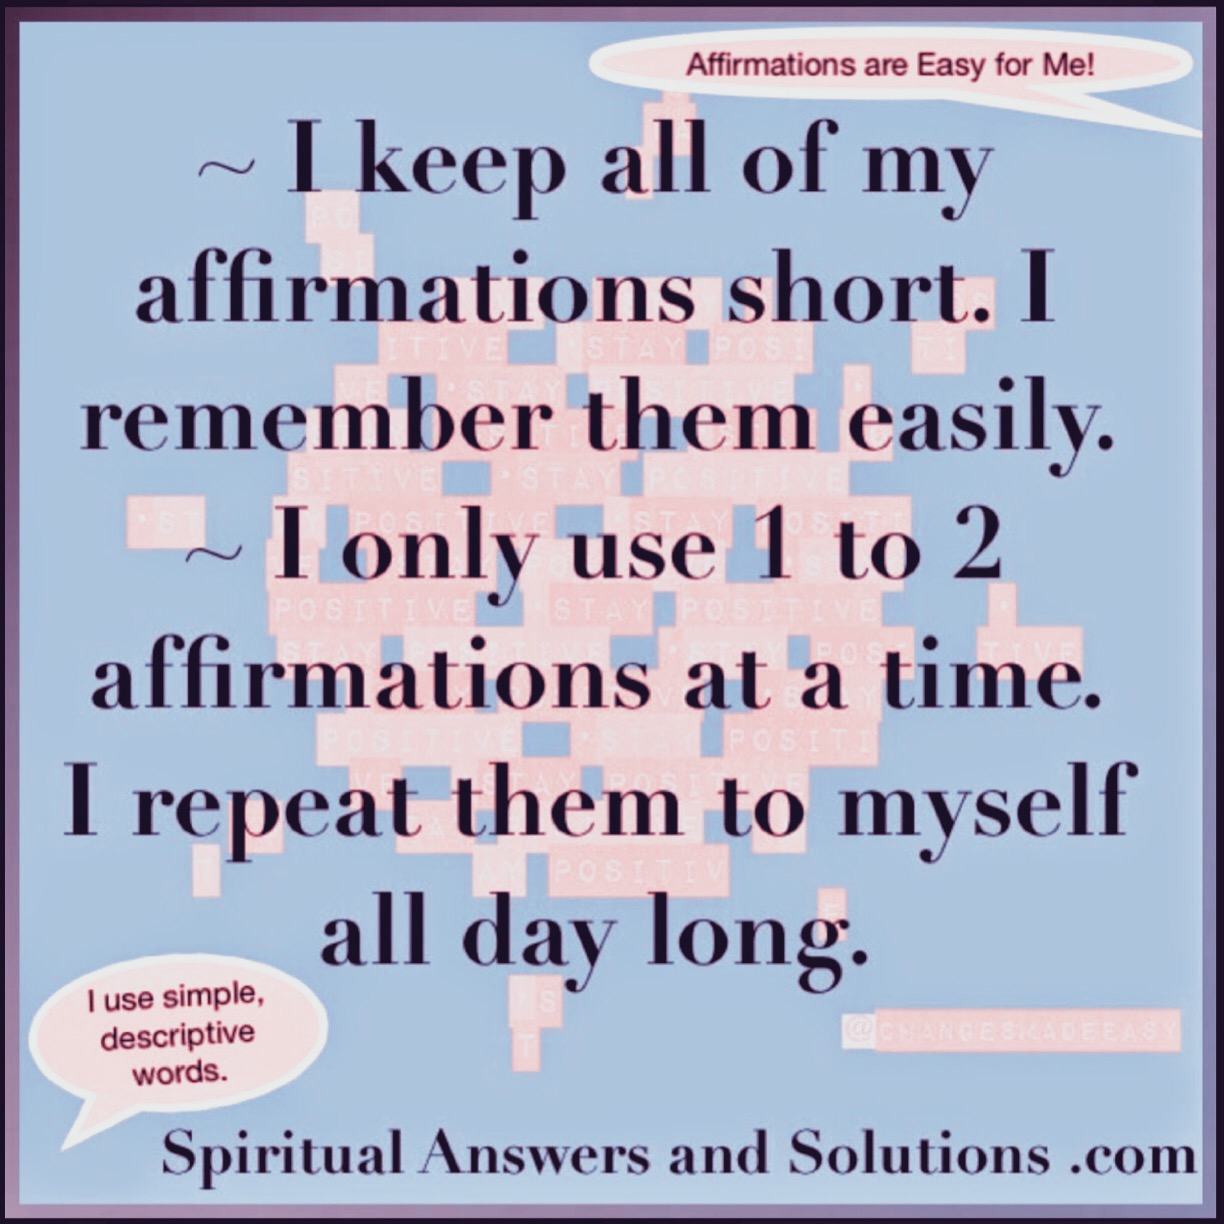 Use Affirmations Daily! They make a huge in difference in how you're thinking and feeling!